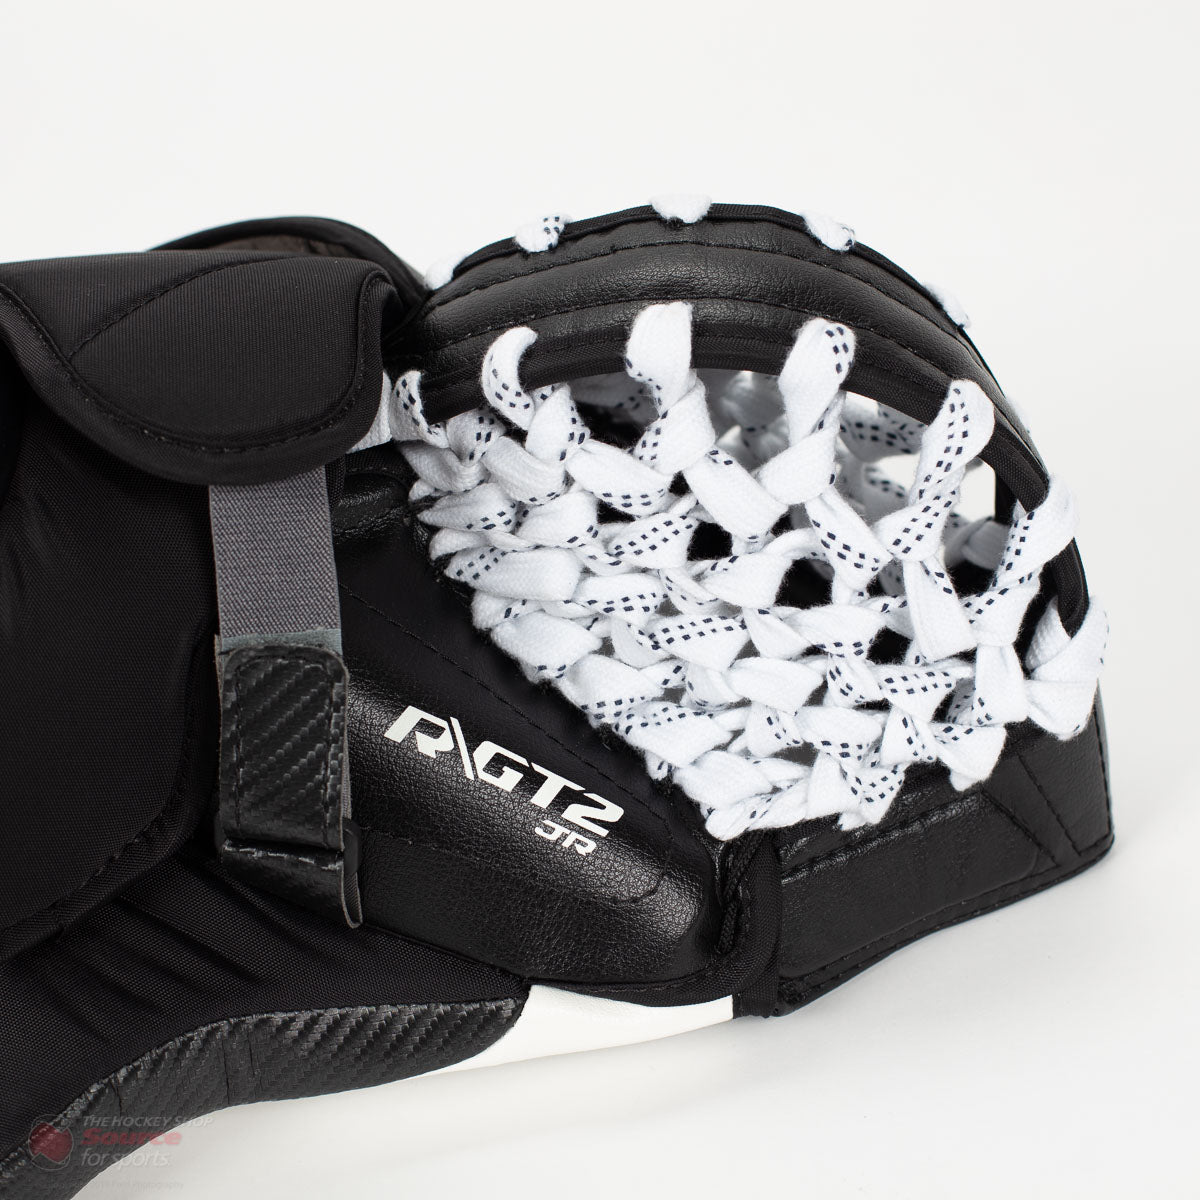 Warrior Ritual GT2 Junior Goalie Catcher - Source Exclusive